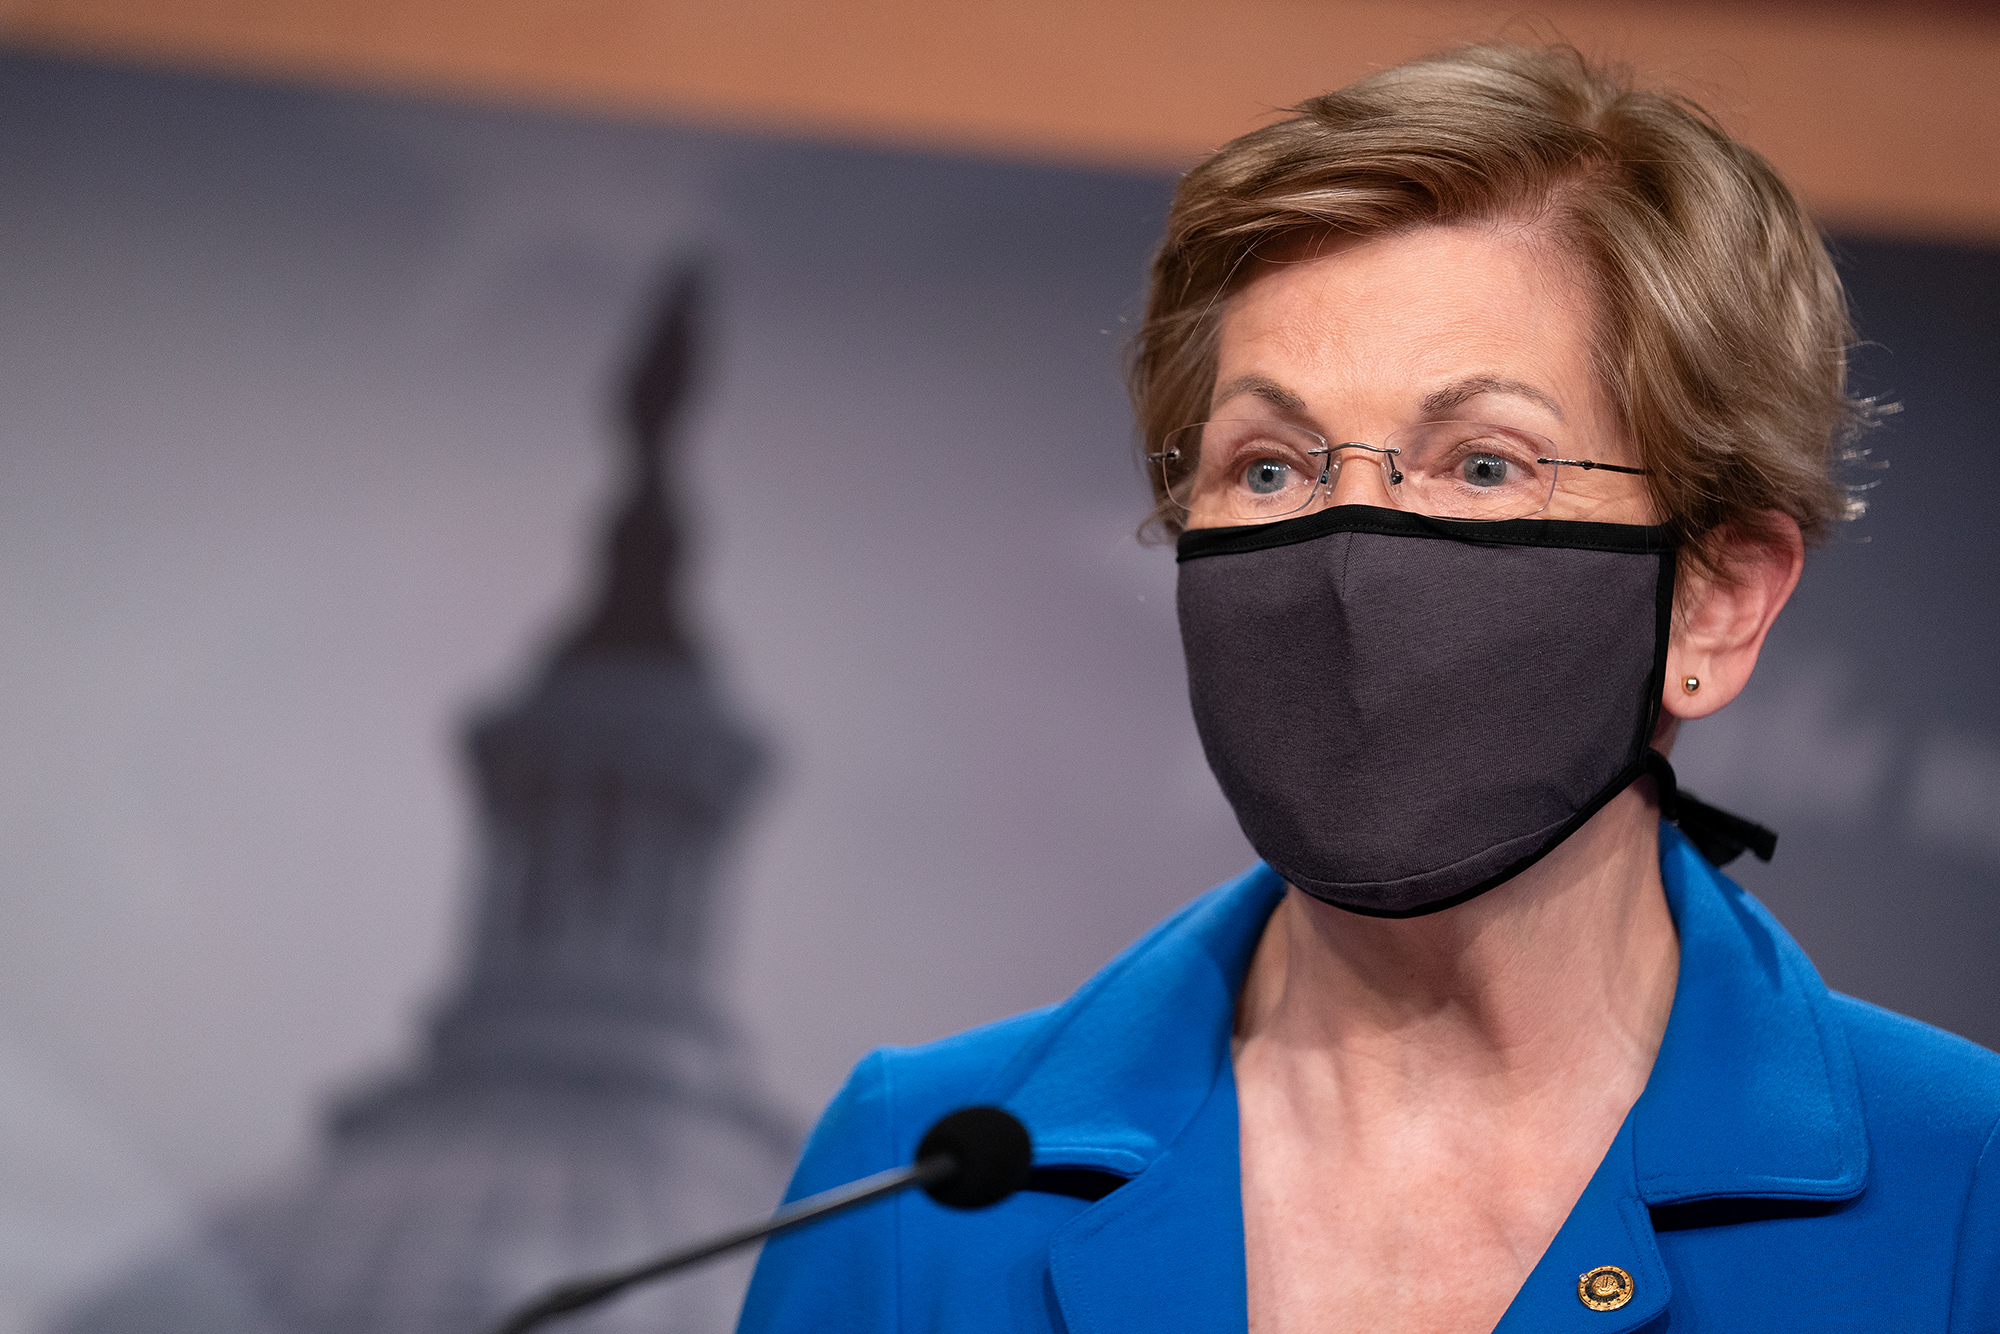 U.S. Sen. Elizabeth Warren (D-MA) photographed during a news conference on Capitol Hill on October 20, 2020 in Washington, DC.